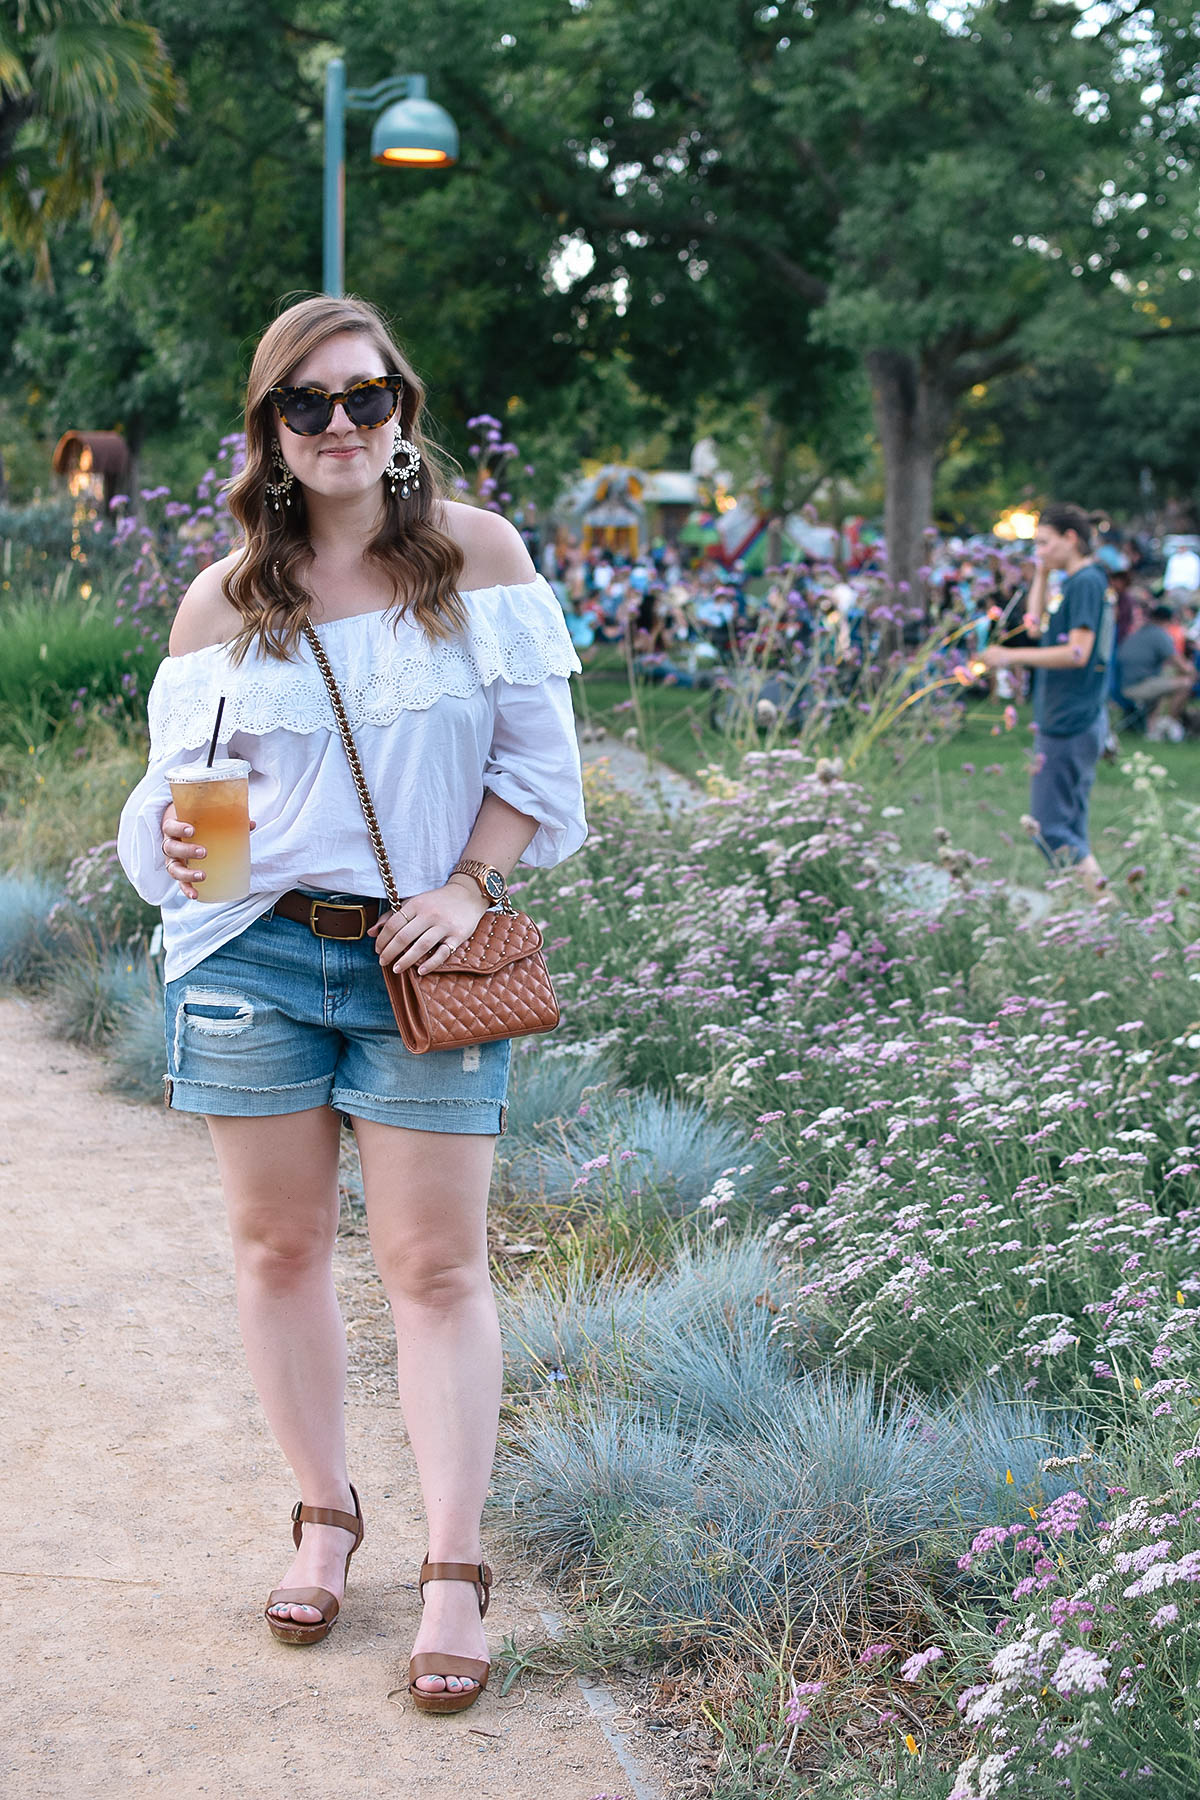 A casual summer look with an eyelet top and ripped denim shorts.